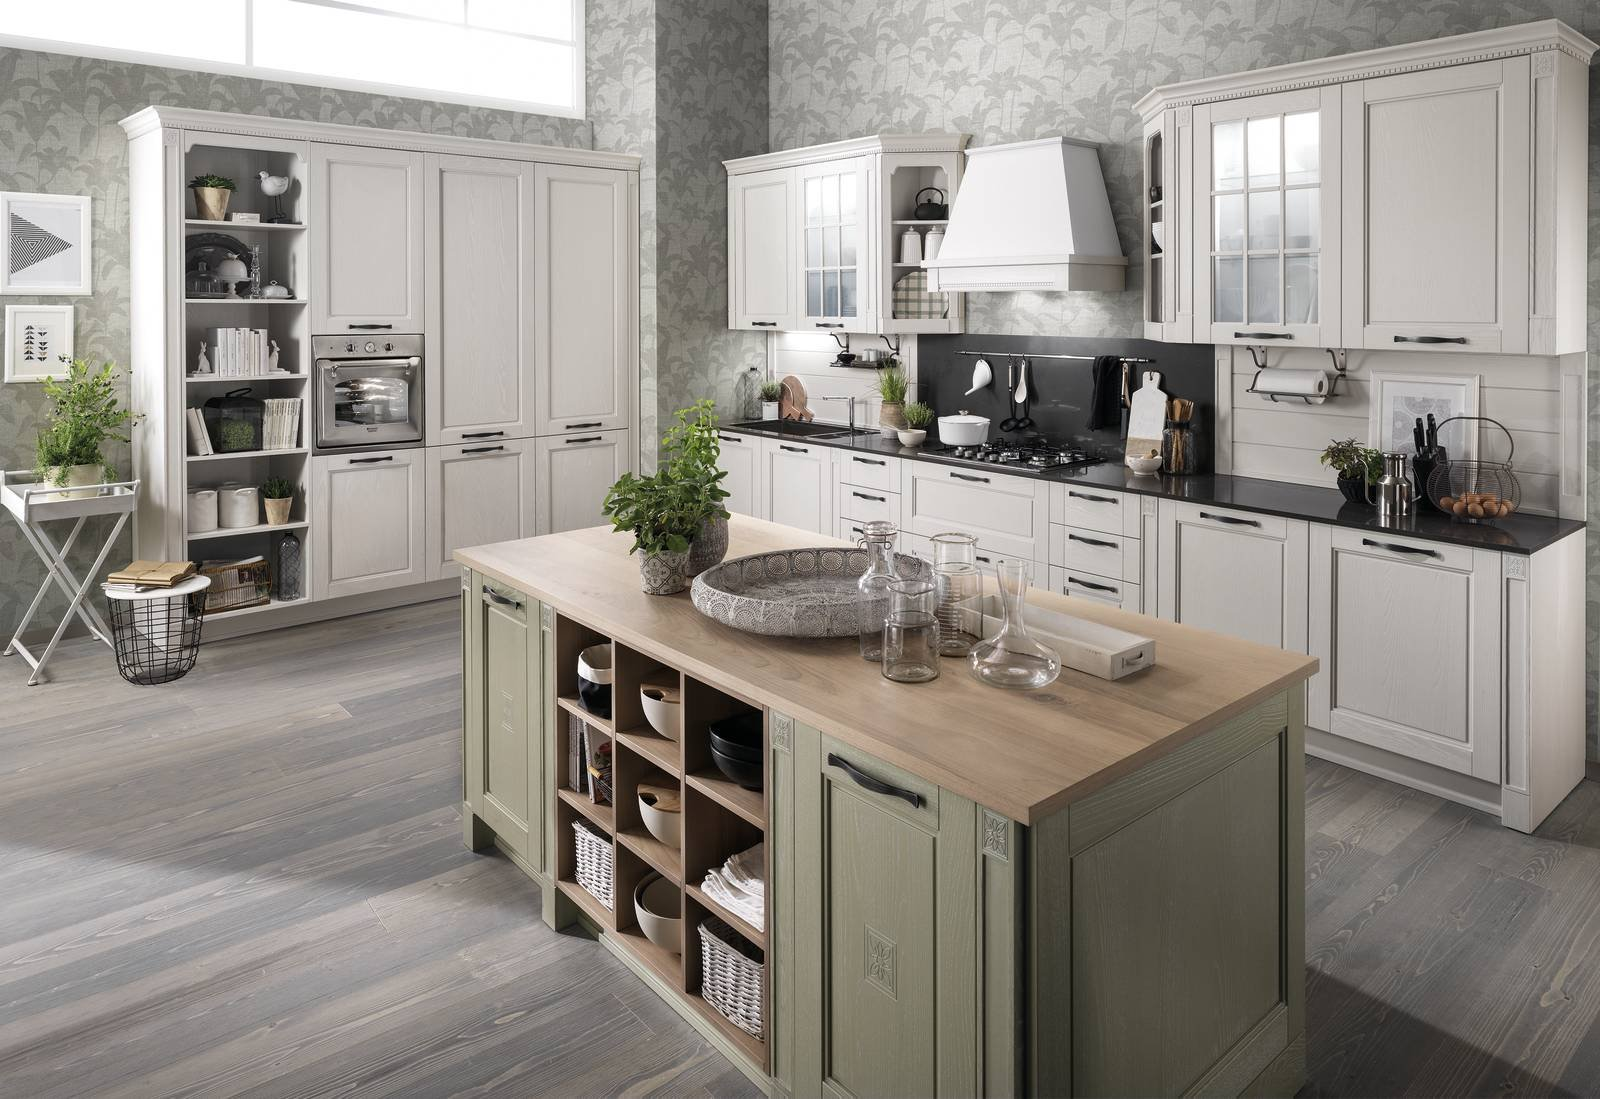 Cucina Country Chic Verde Cucina In Stile Country Anche In Versione Attuale Cose